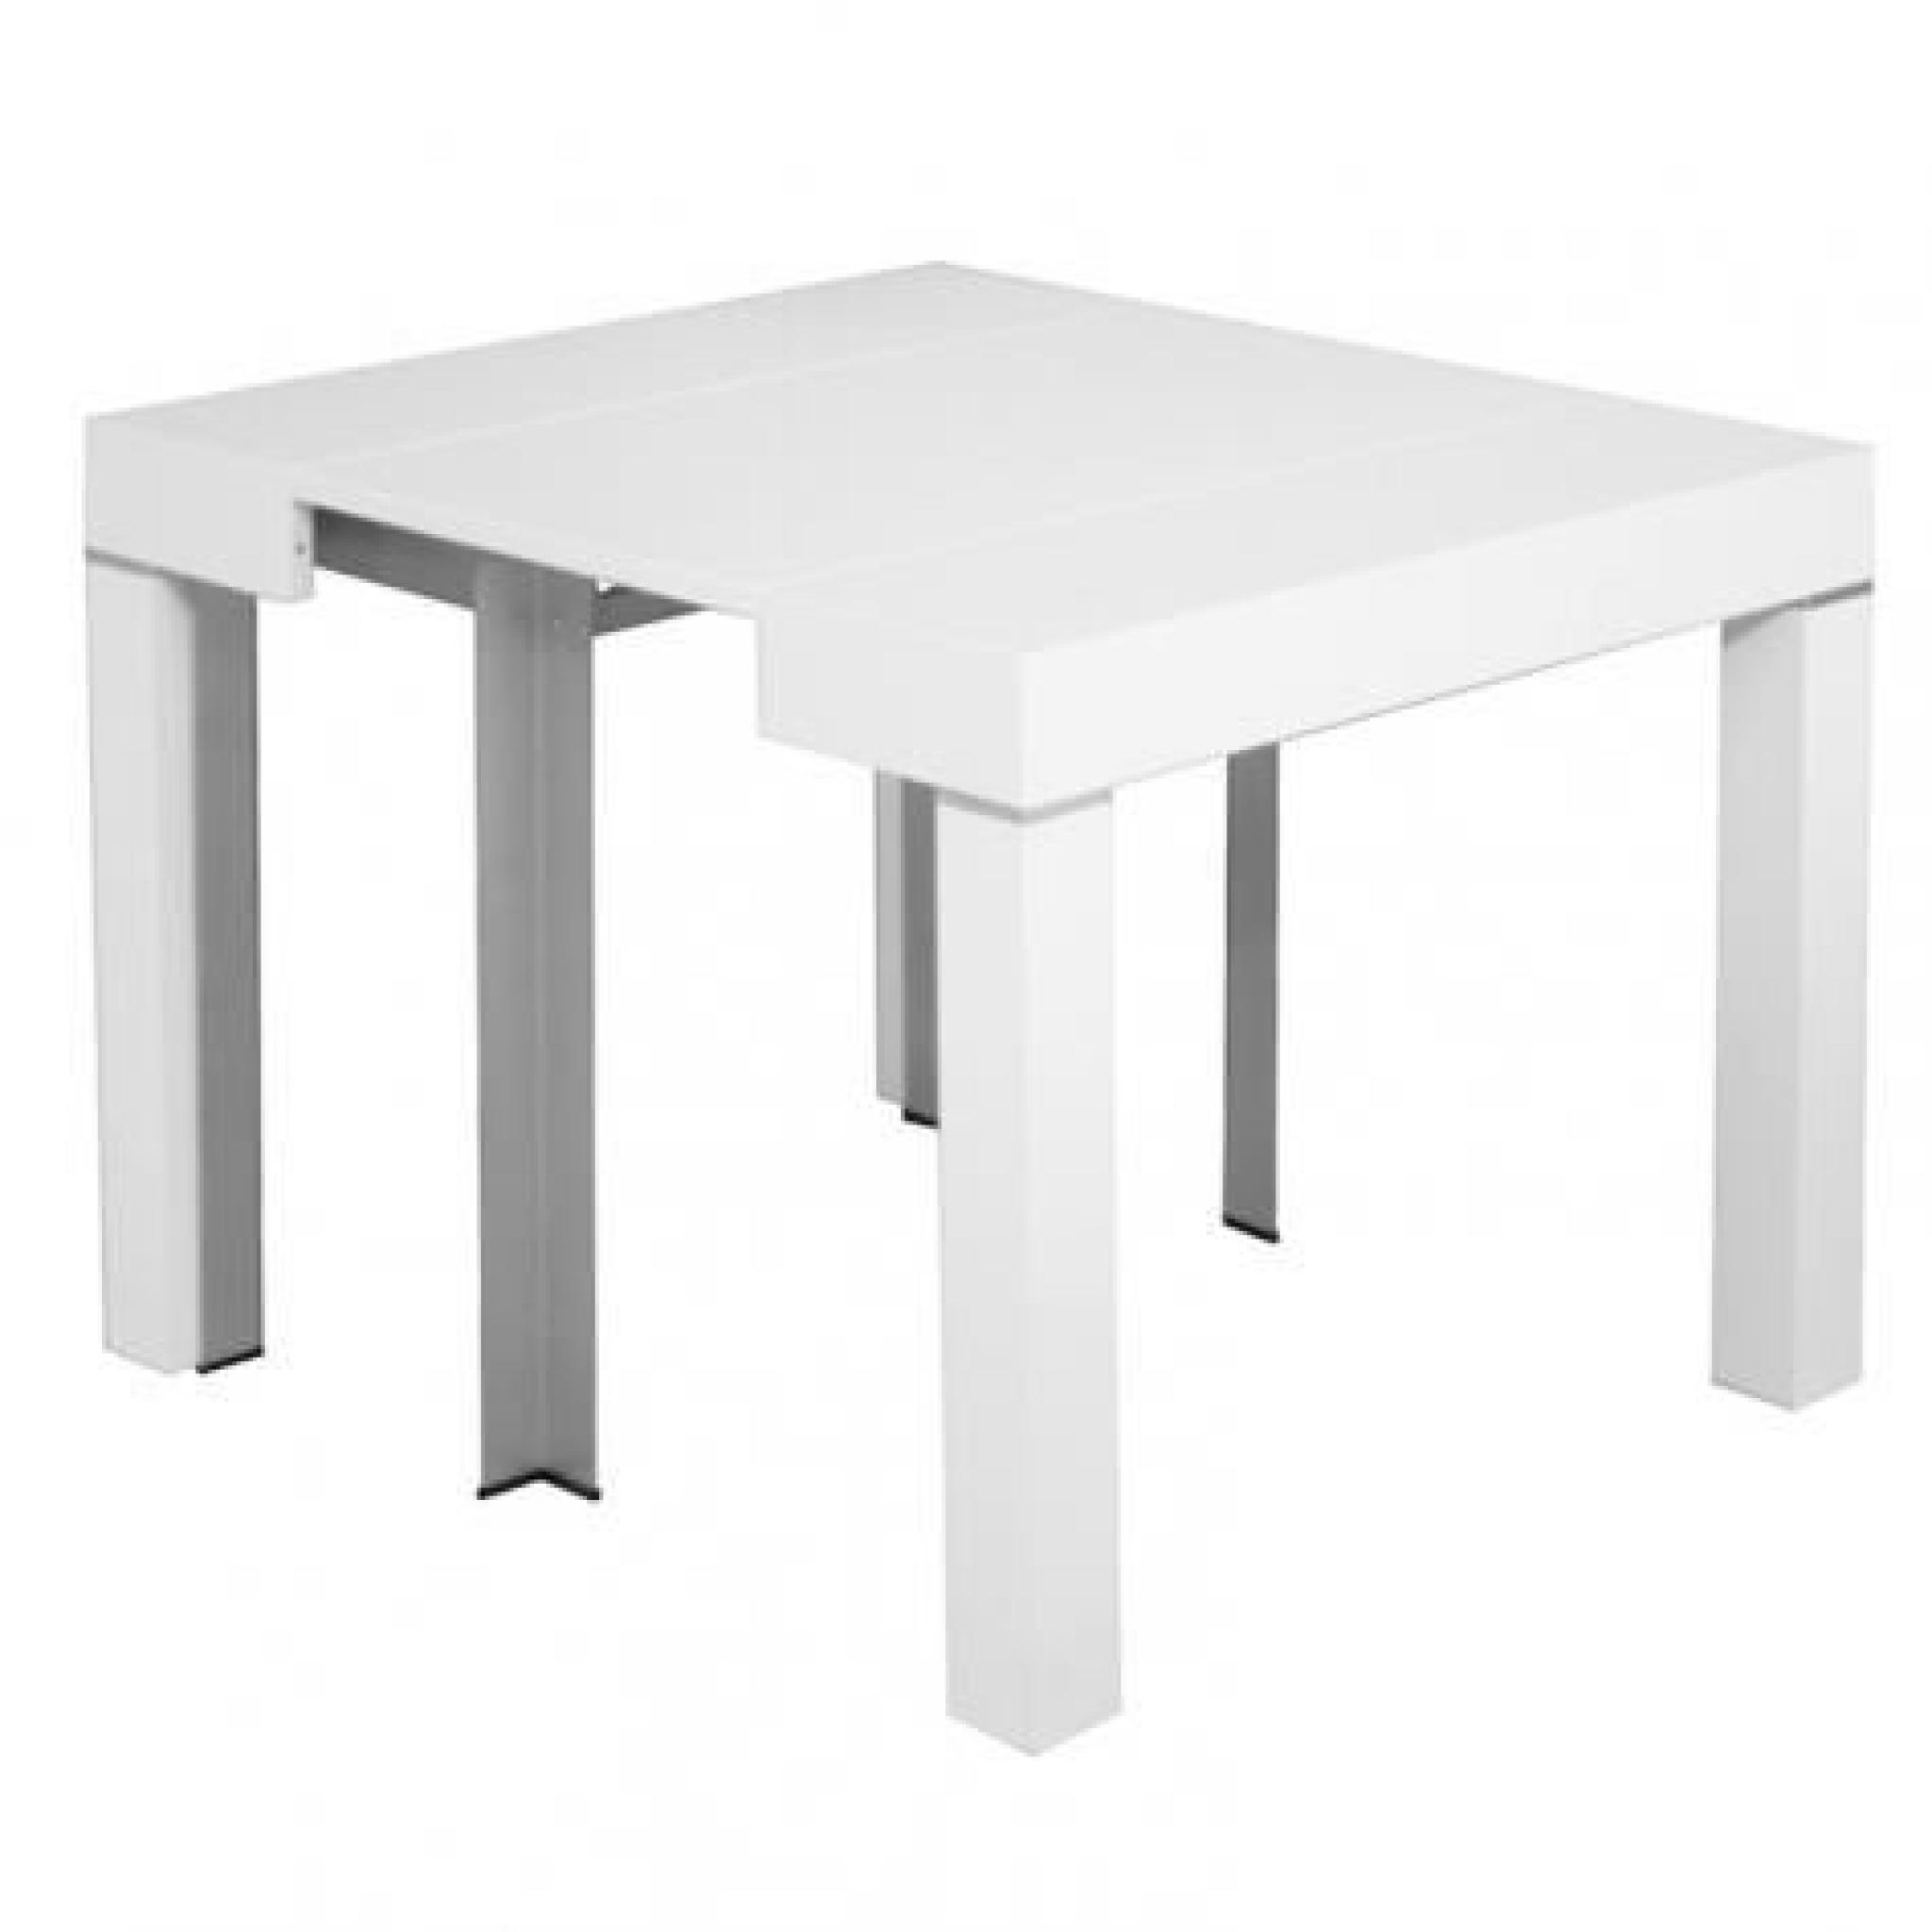 Table console extensible blanche laqu e 4 rallonges alesia for Table blanche a rallonge